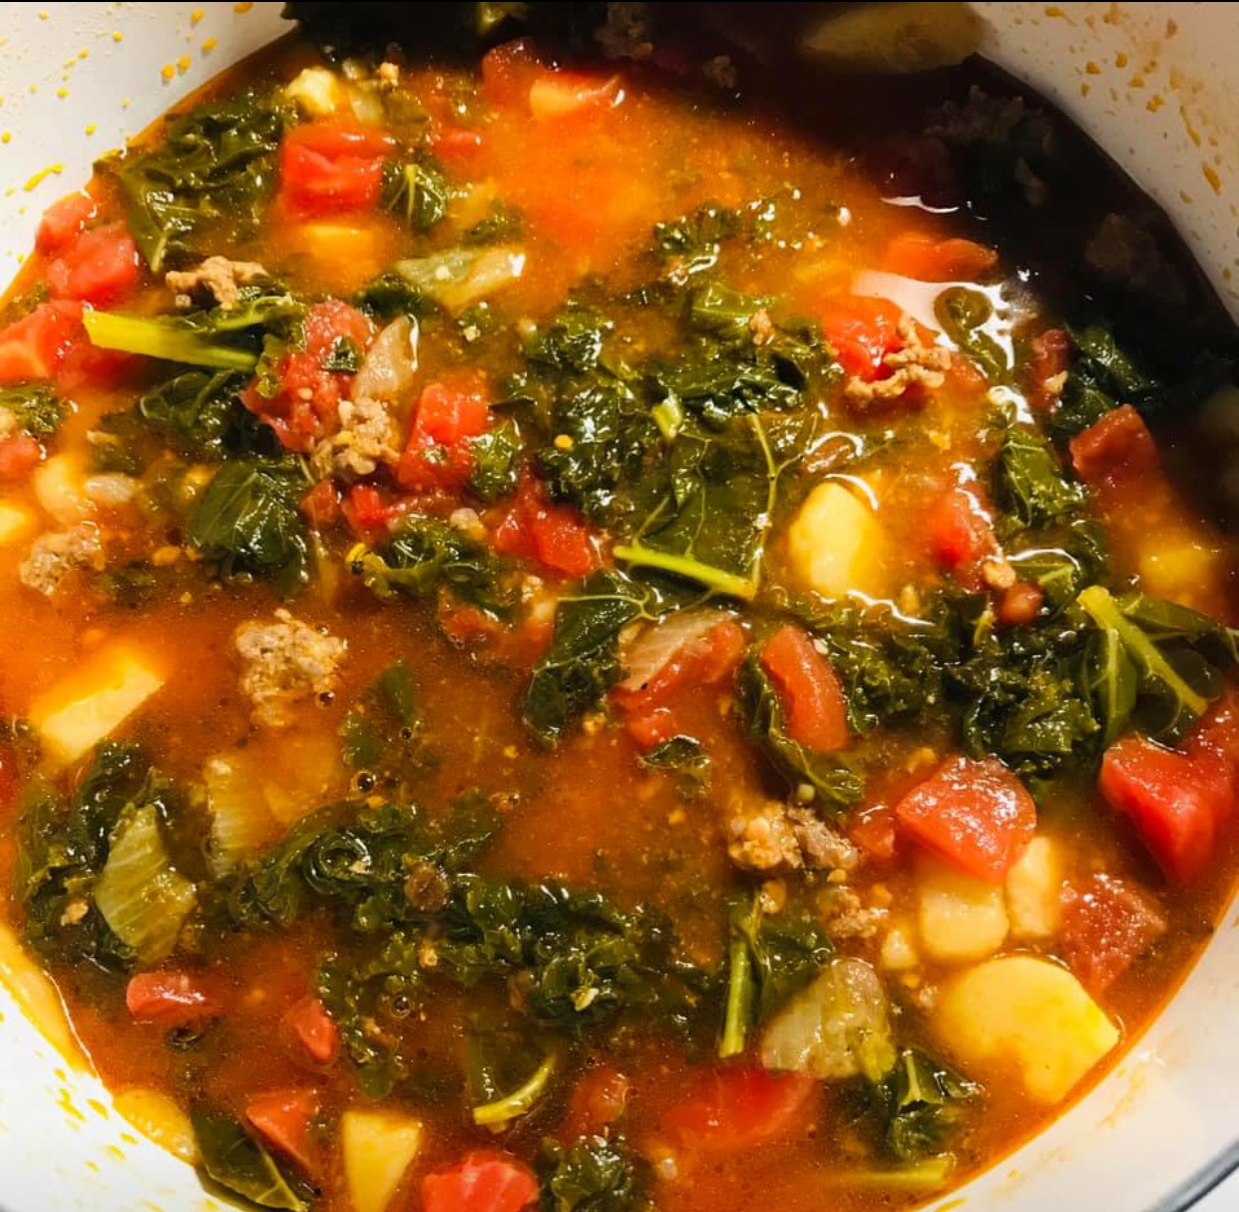 How to make kale and roasted vegetable soup